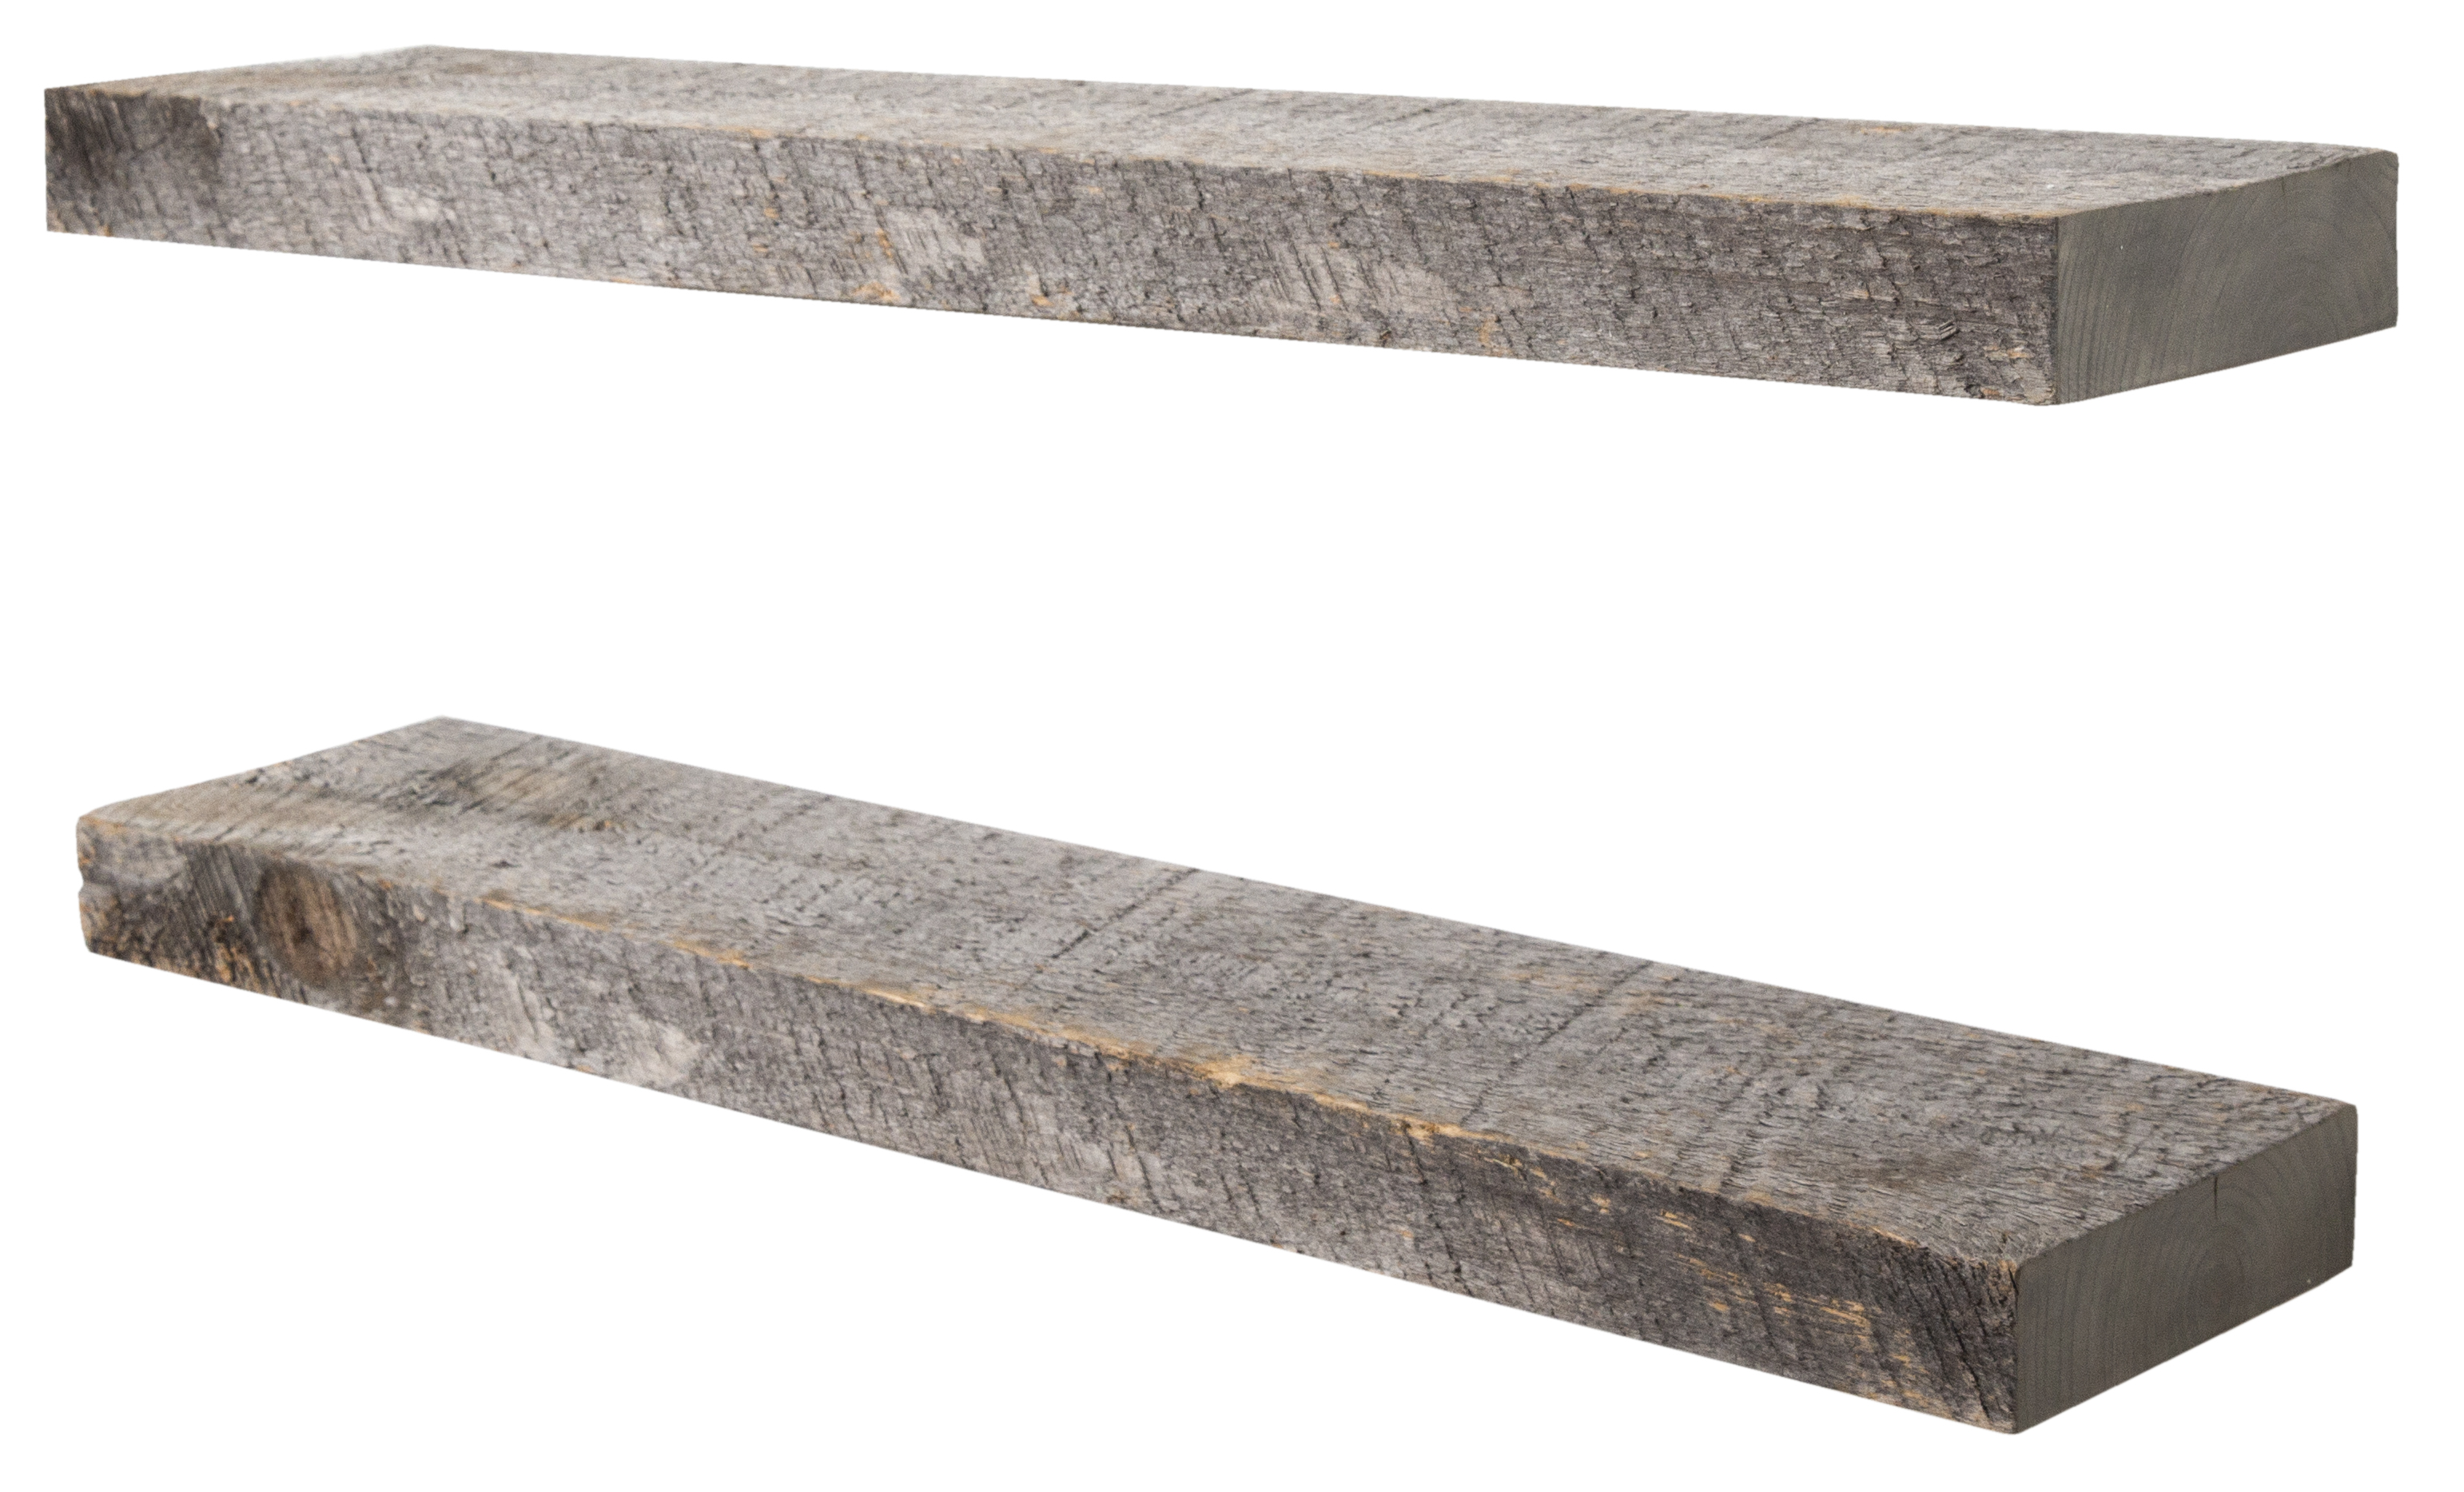 imperative decor floating shelves rustic wood wall shelf usa handmade set of 2 reclaimed grey 24 x 5 5